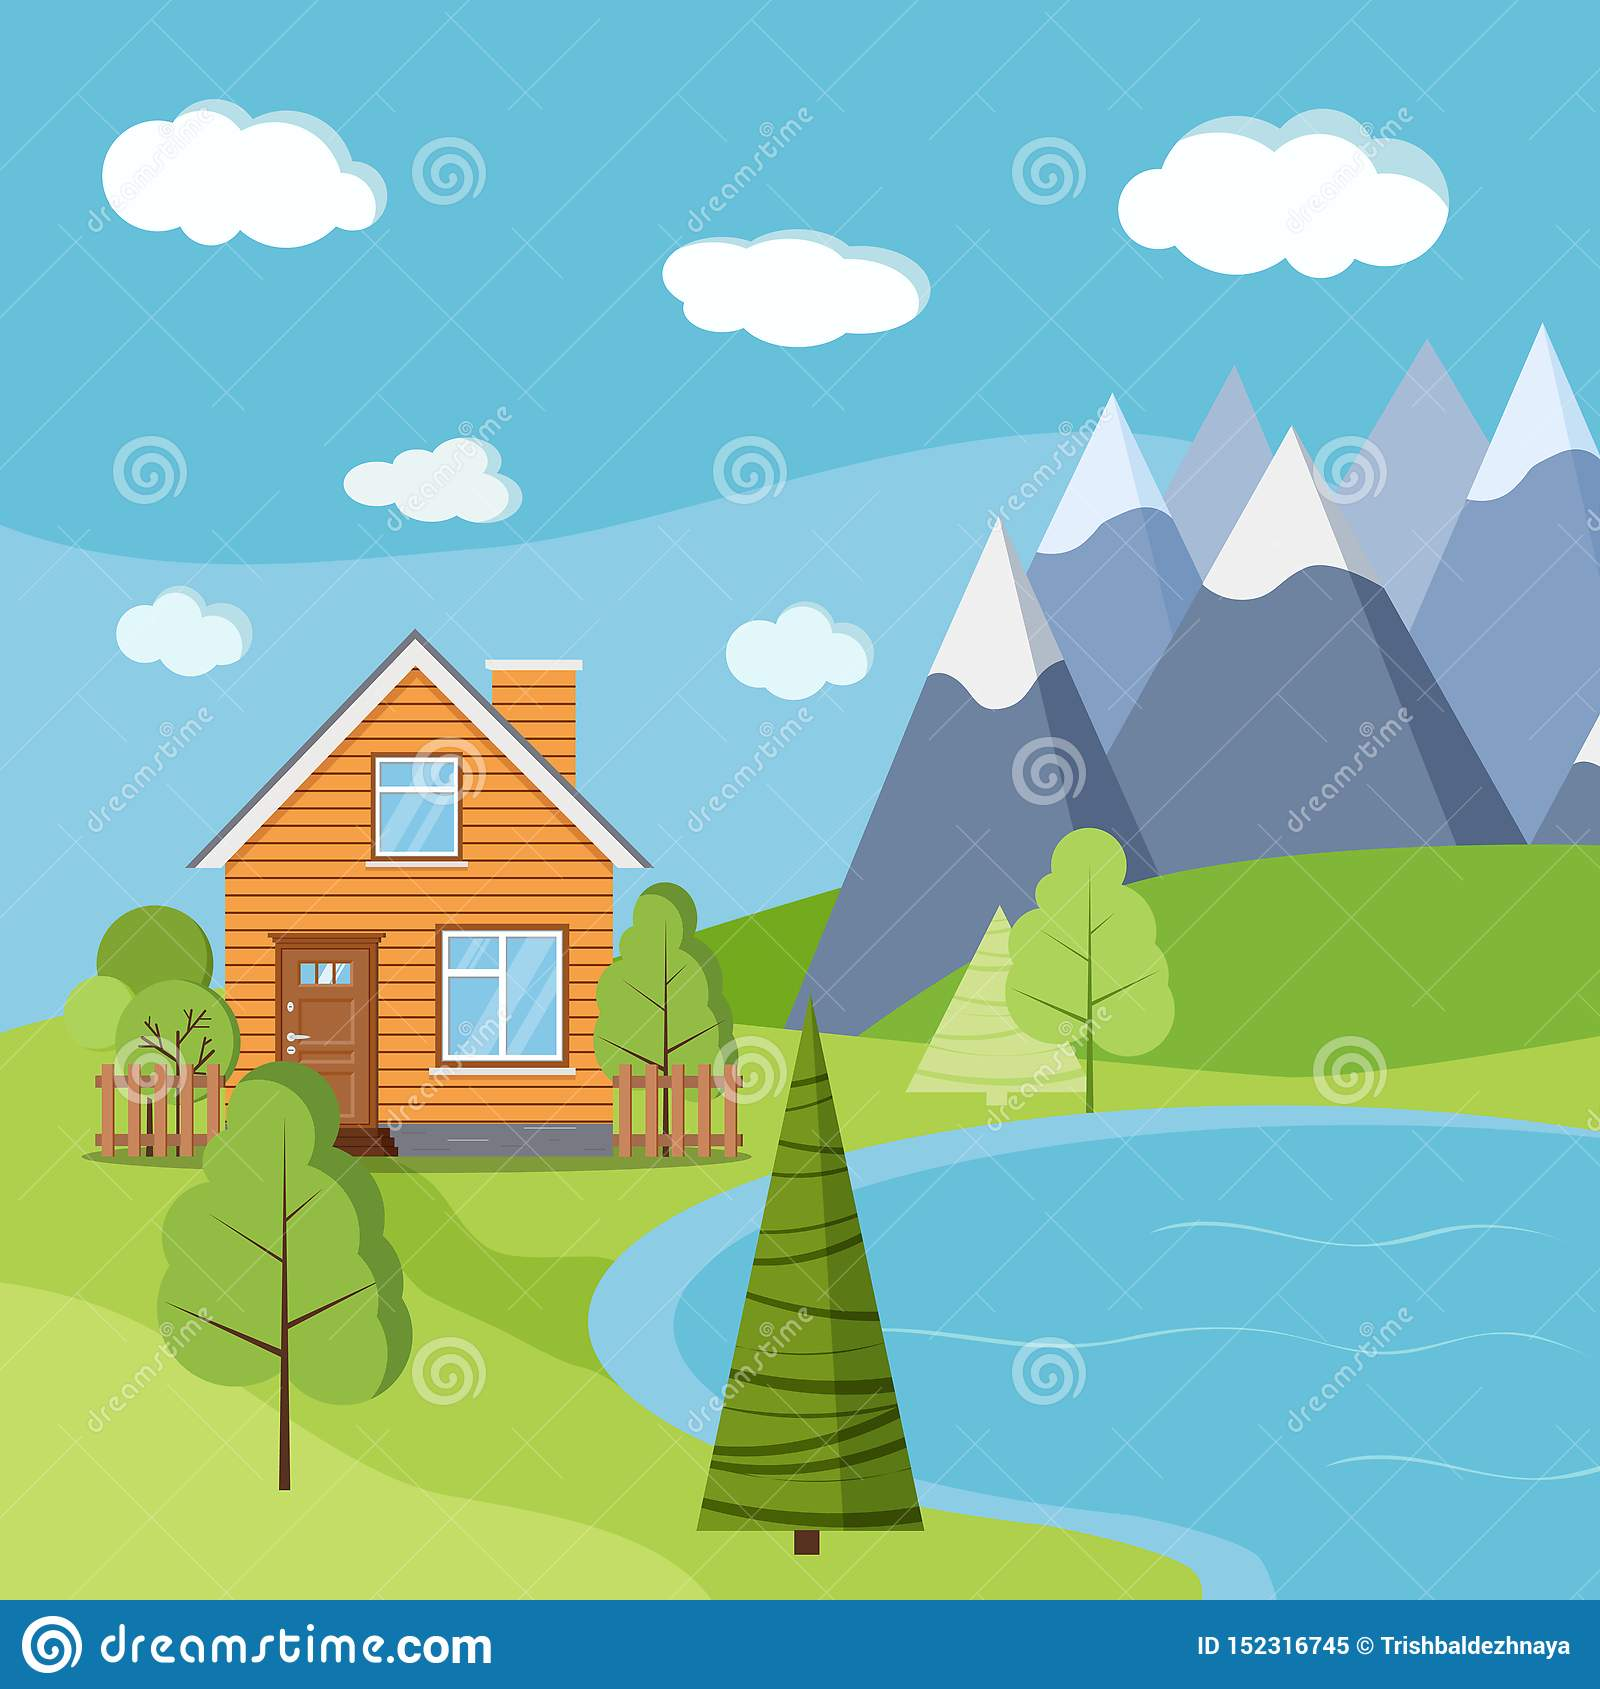 Lake and mountains landscape scene with wooden rural farm house with chimney